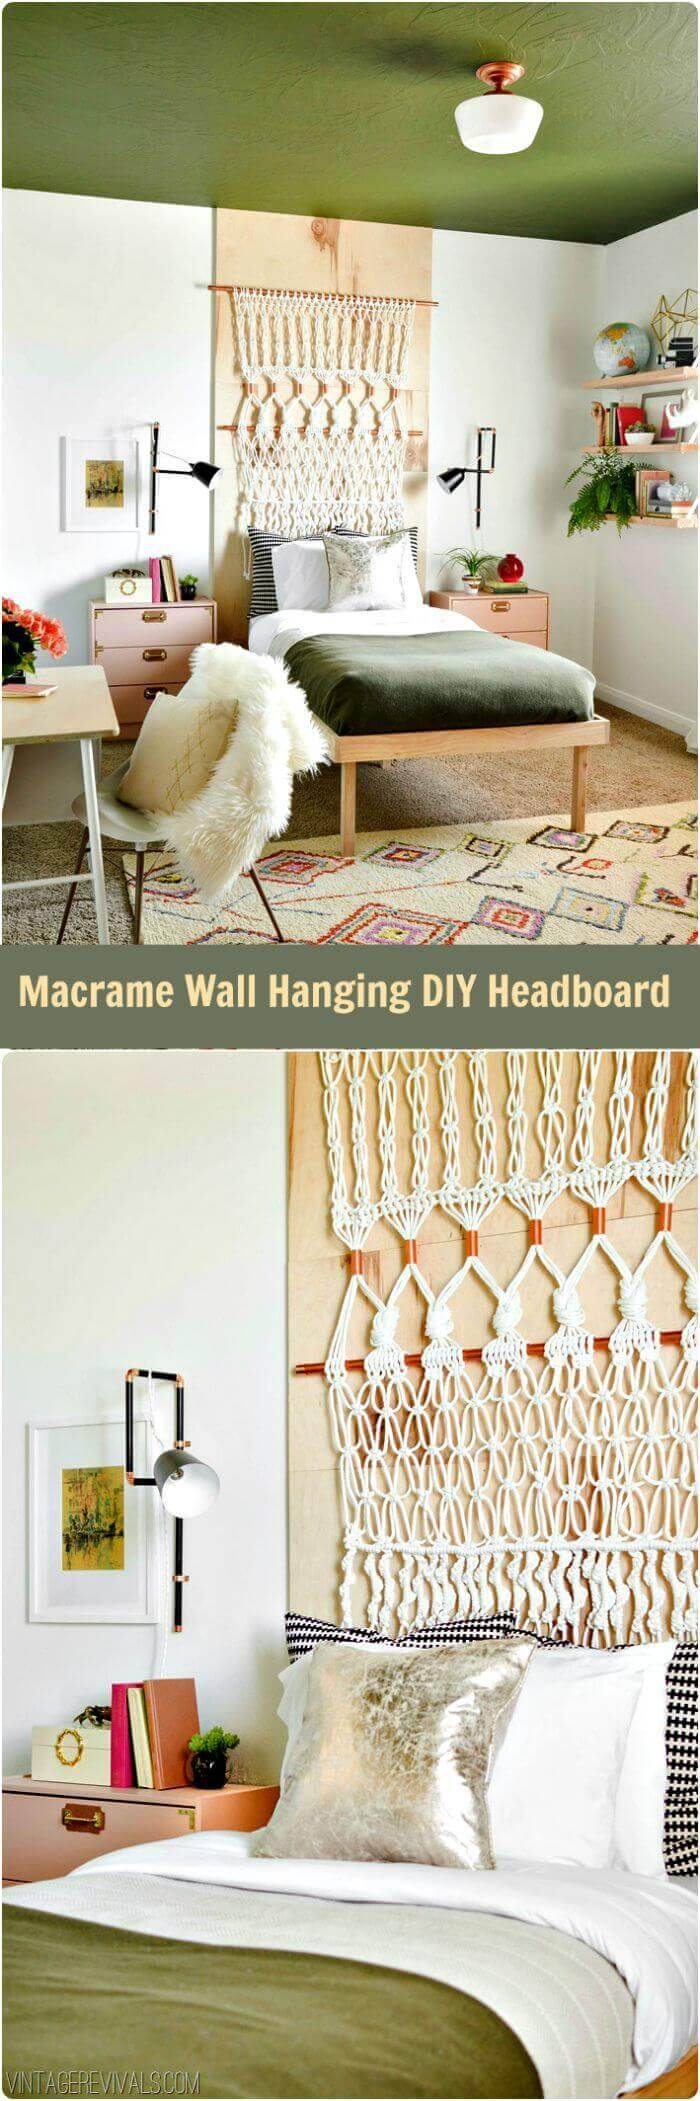 Macrame Wall Hanging DIY Headboard